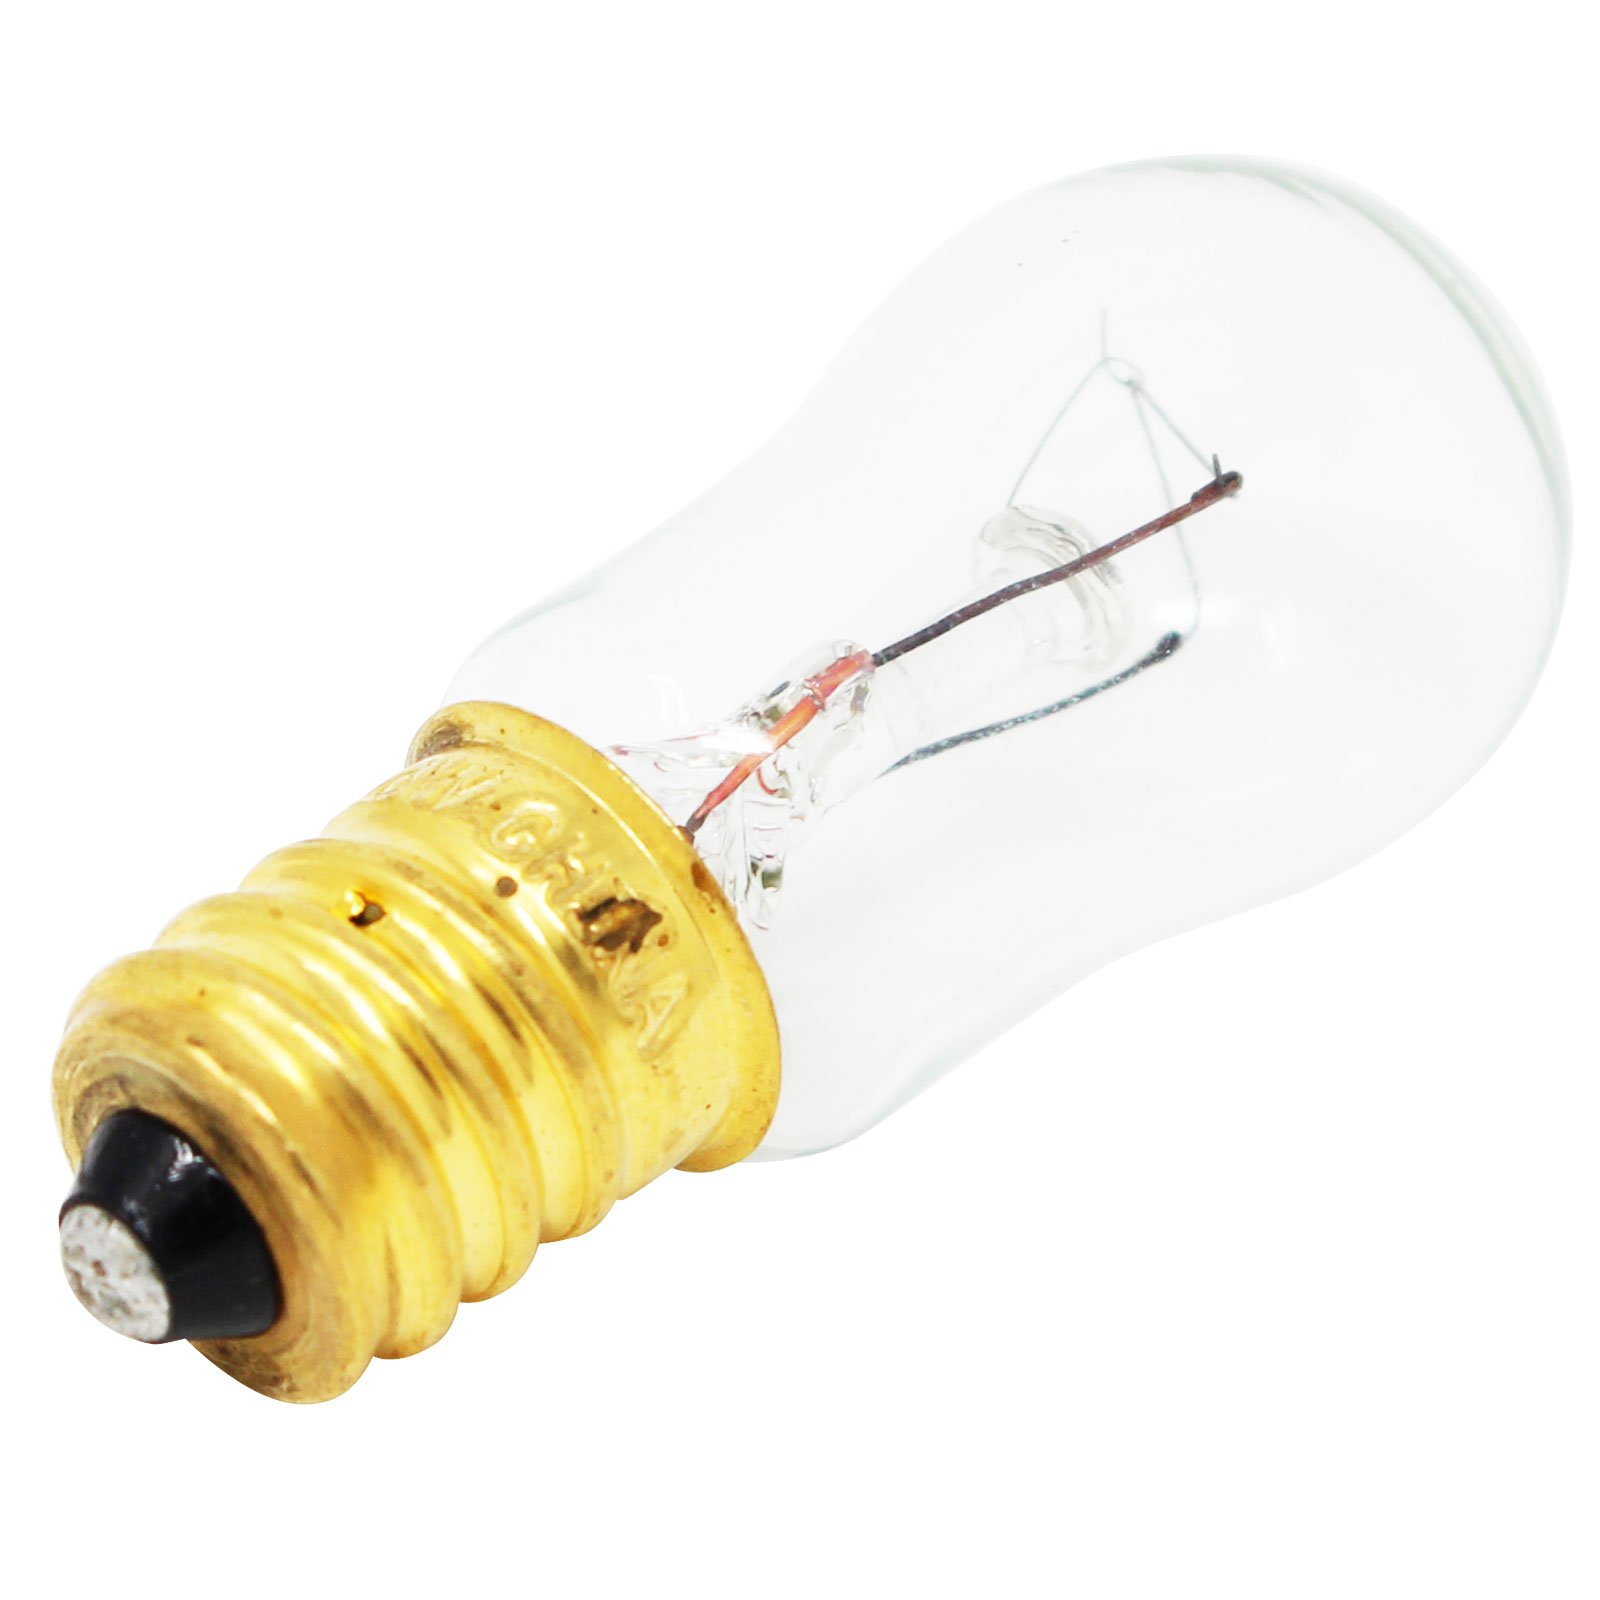 Replacement Light Bulb for General Electric PSC21MGMBWW Refrigerator - Compatible General Electric WR02X12208 Light Bulb